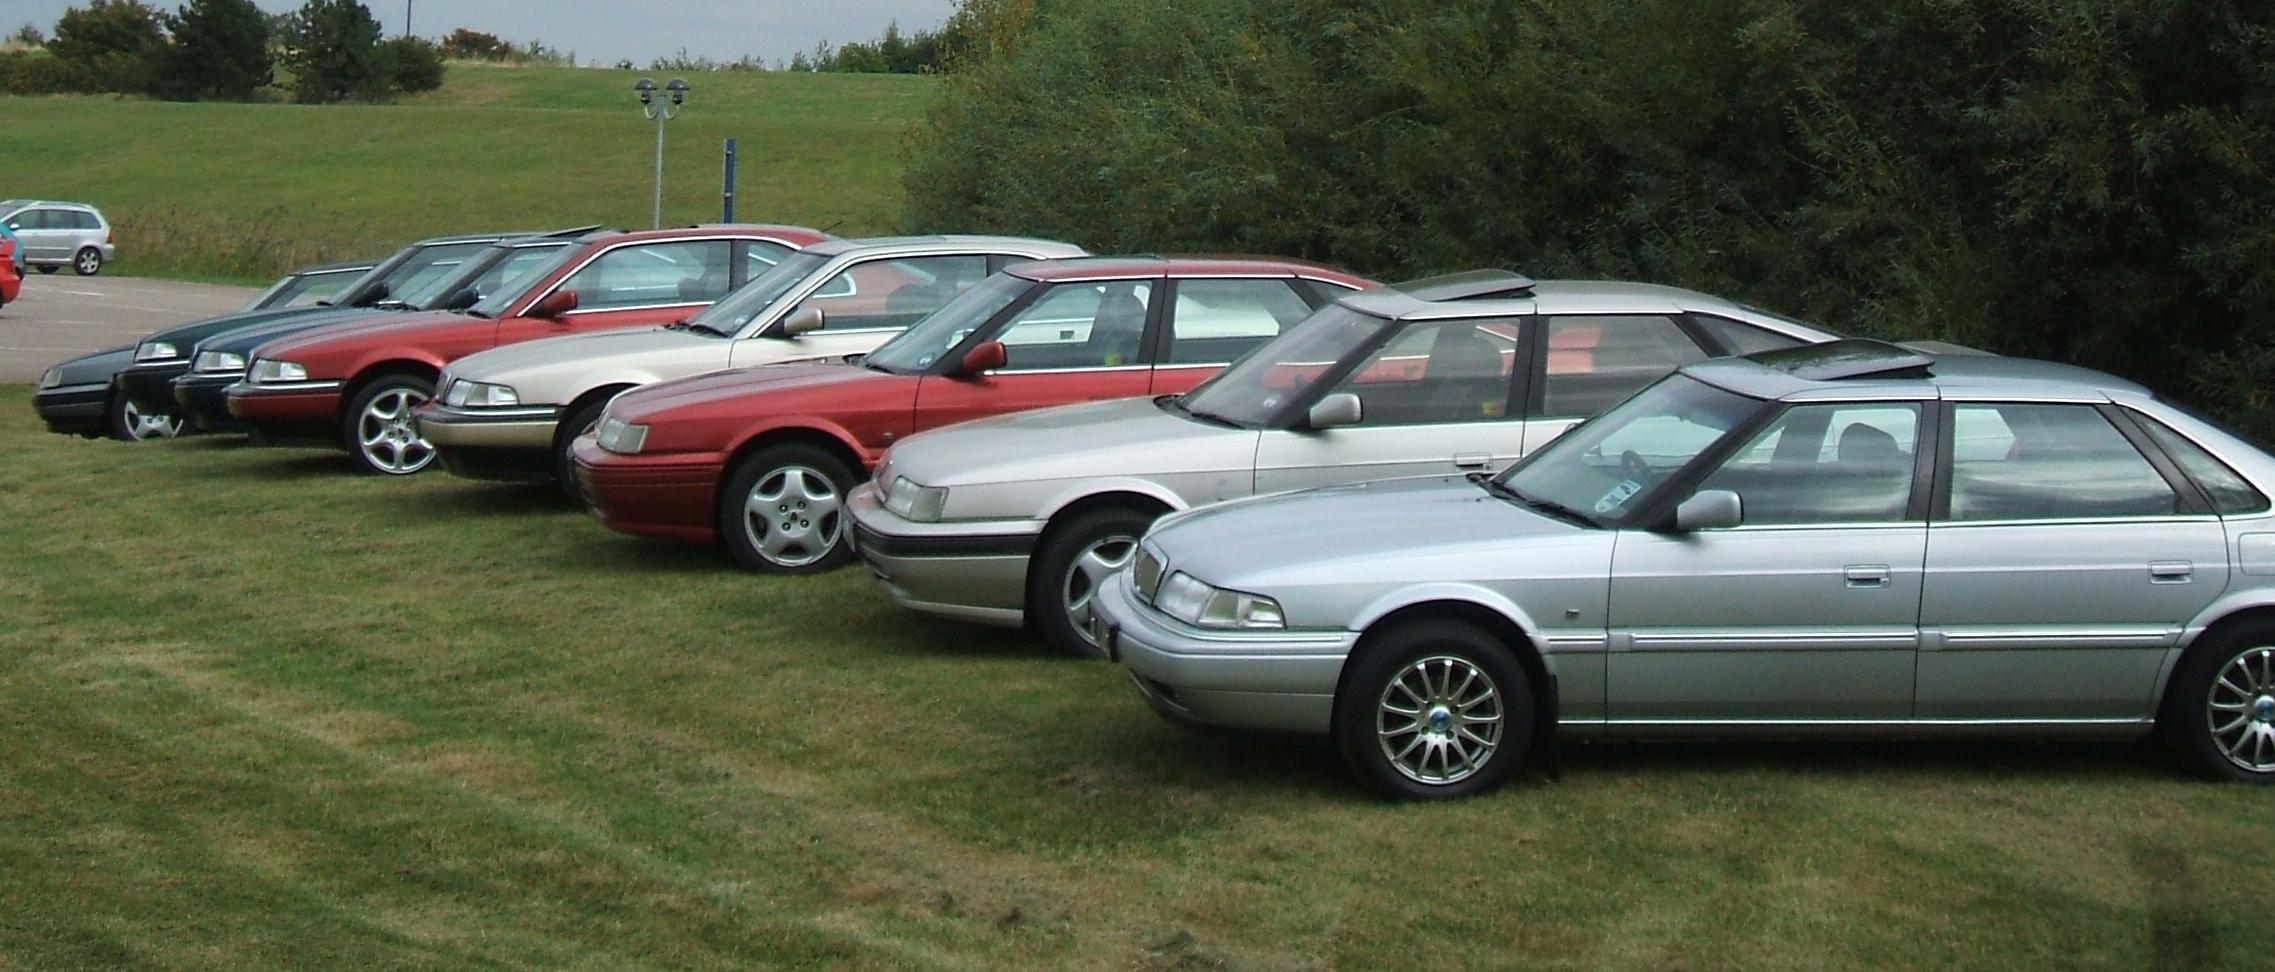 Rover 800 image #7